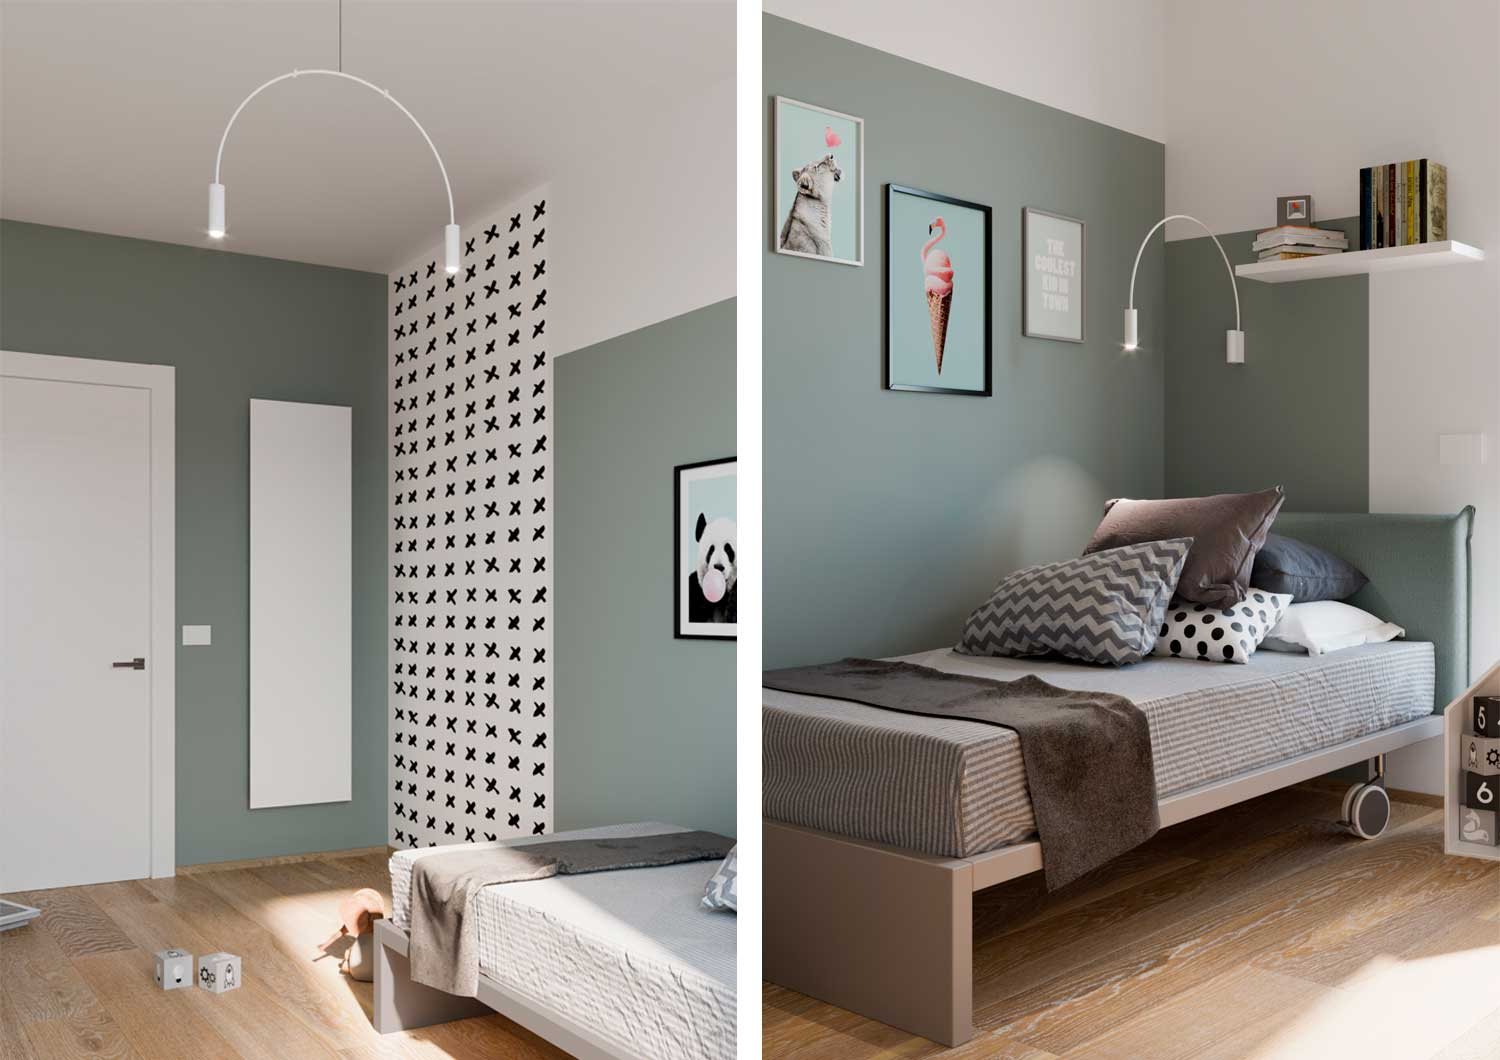 02 Volta Residential Project By Gaia Miacola Italy